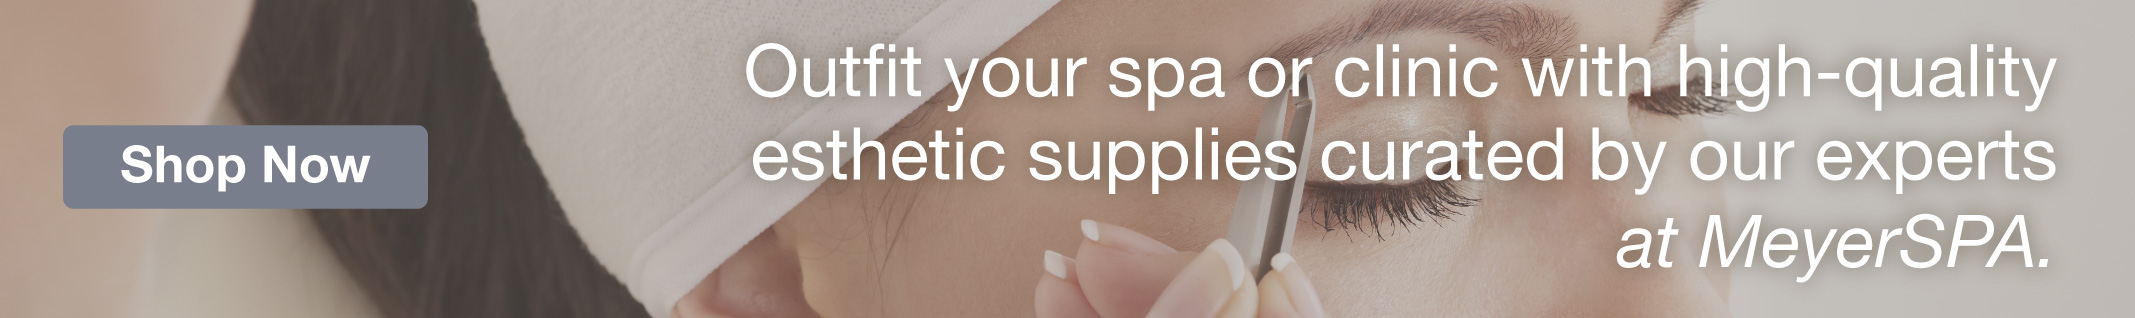 Homepage Banner - Esthetician Supplies at MeyerSPA - Click to Shop